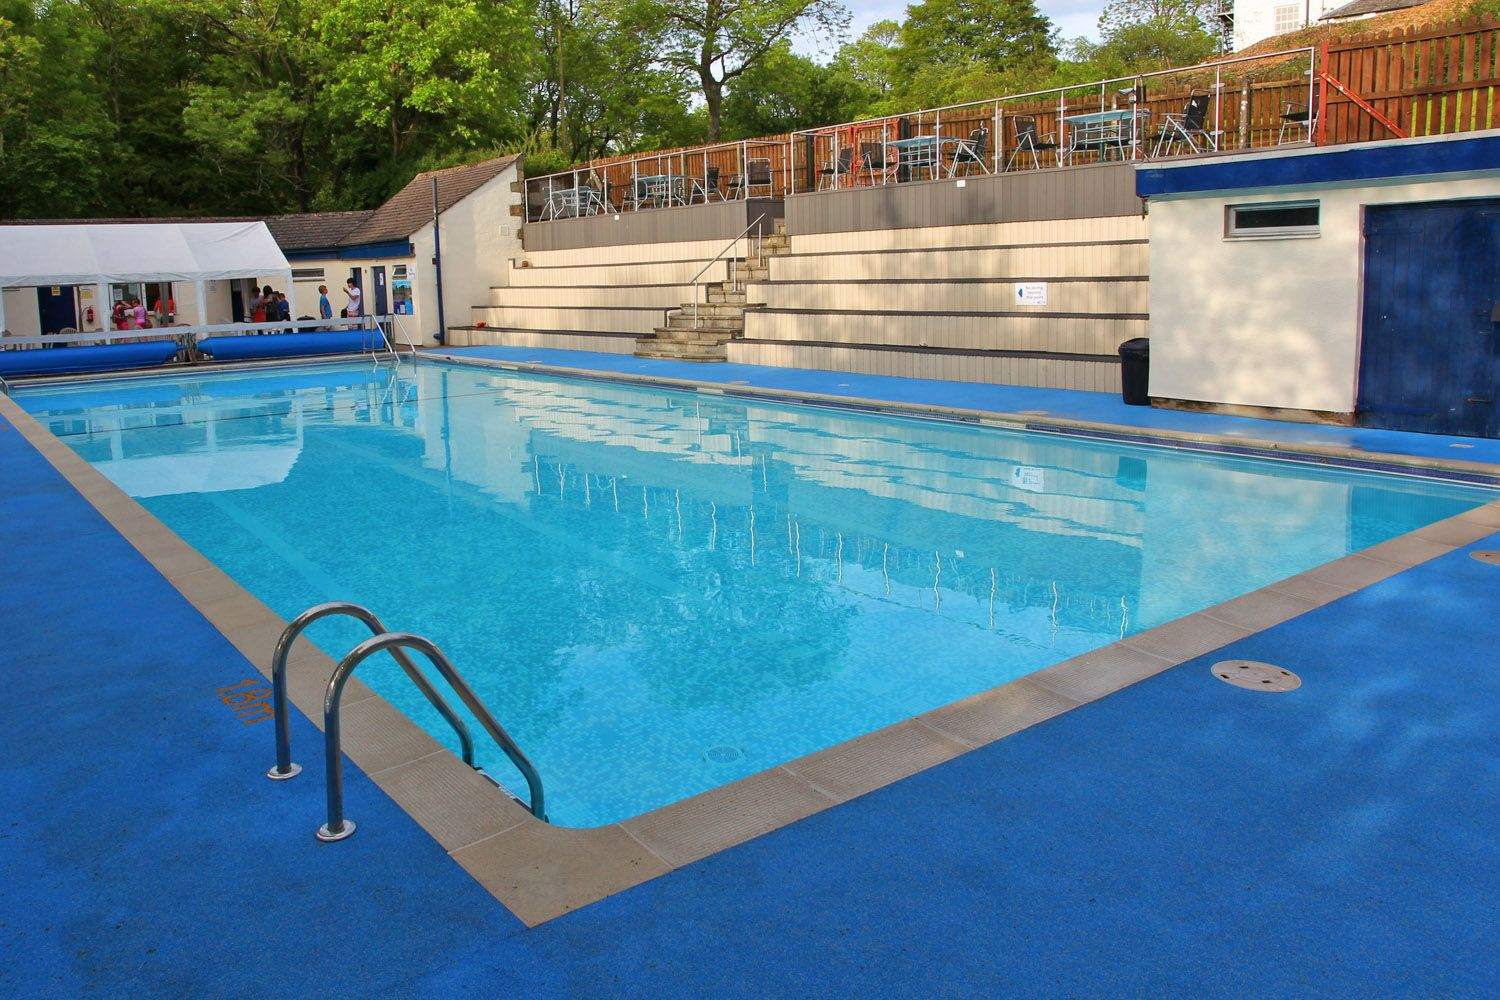 #SWIMMING_POOL_CLEANING, #MAINTENANCE & #REPAIR COMPANY